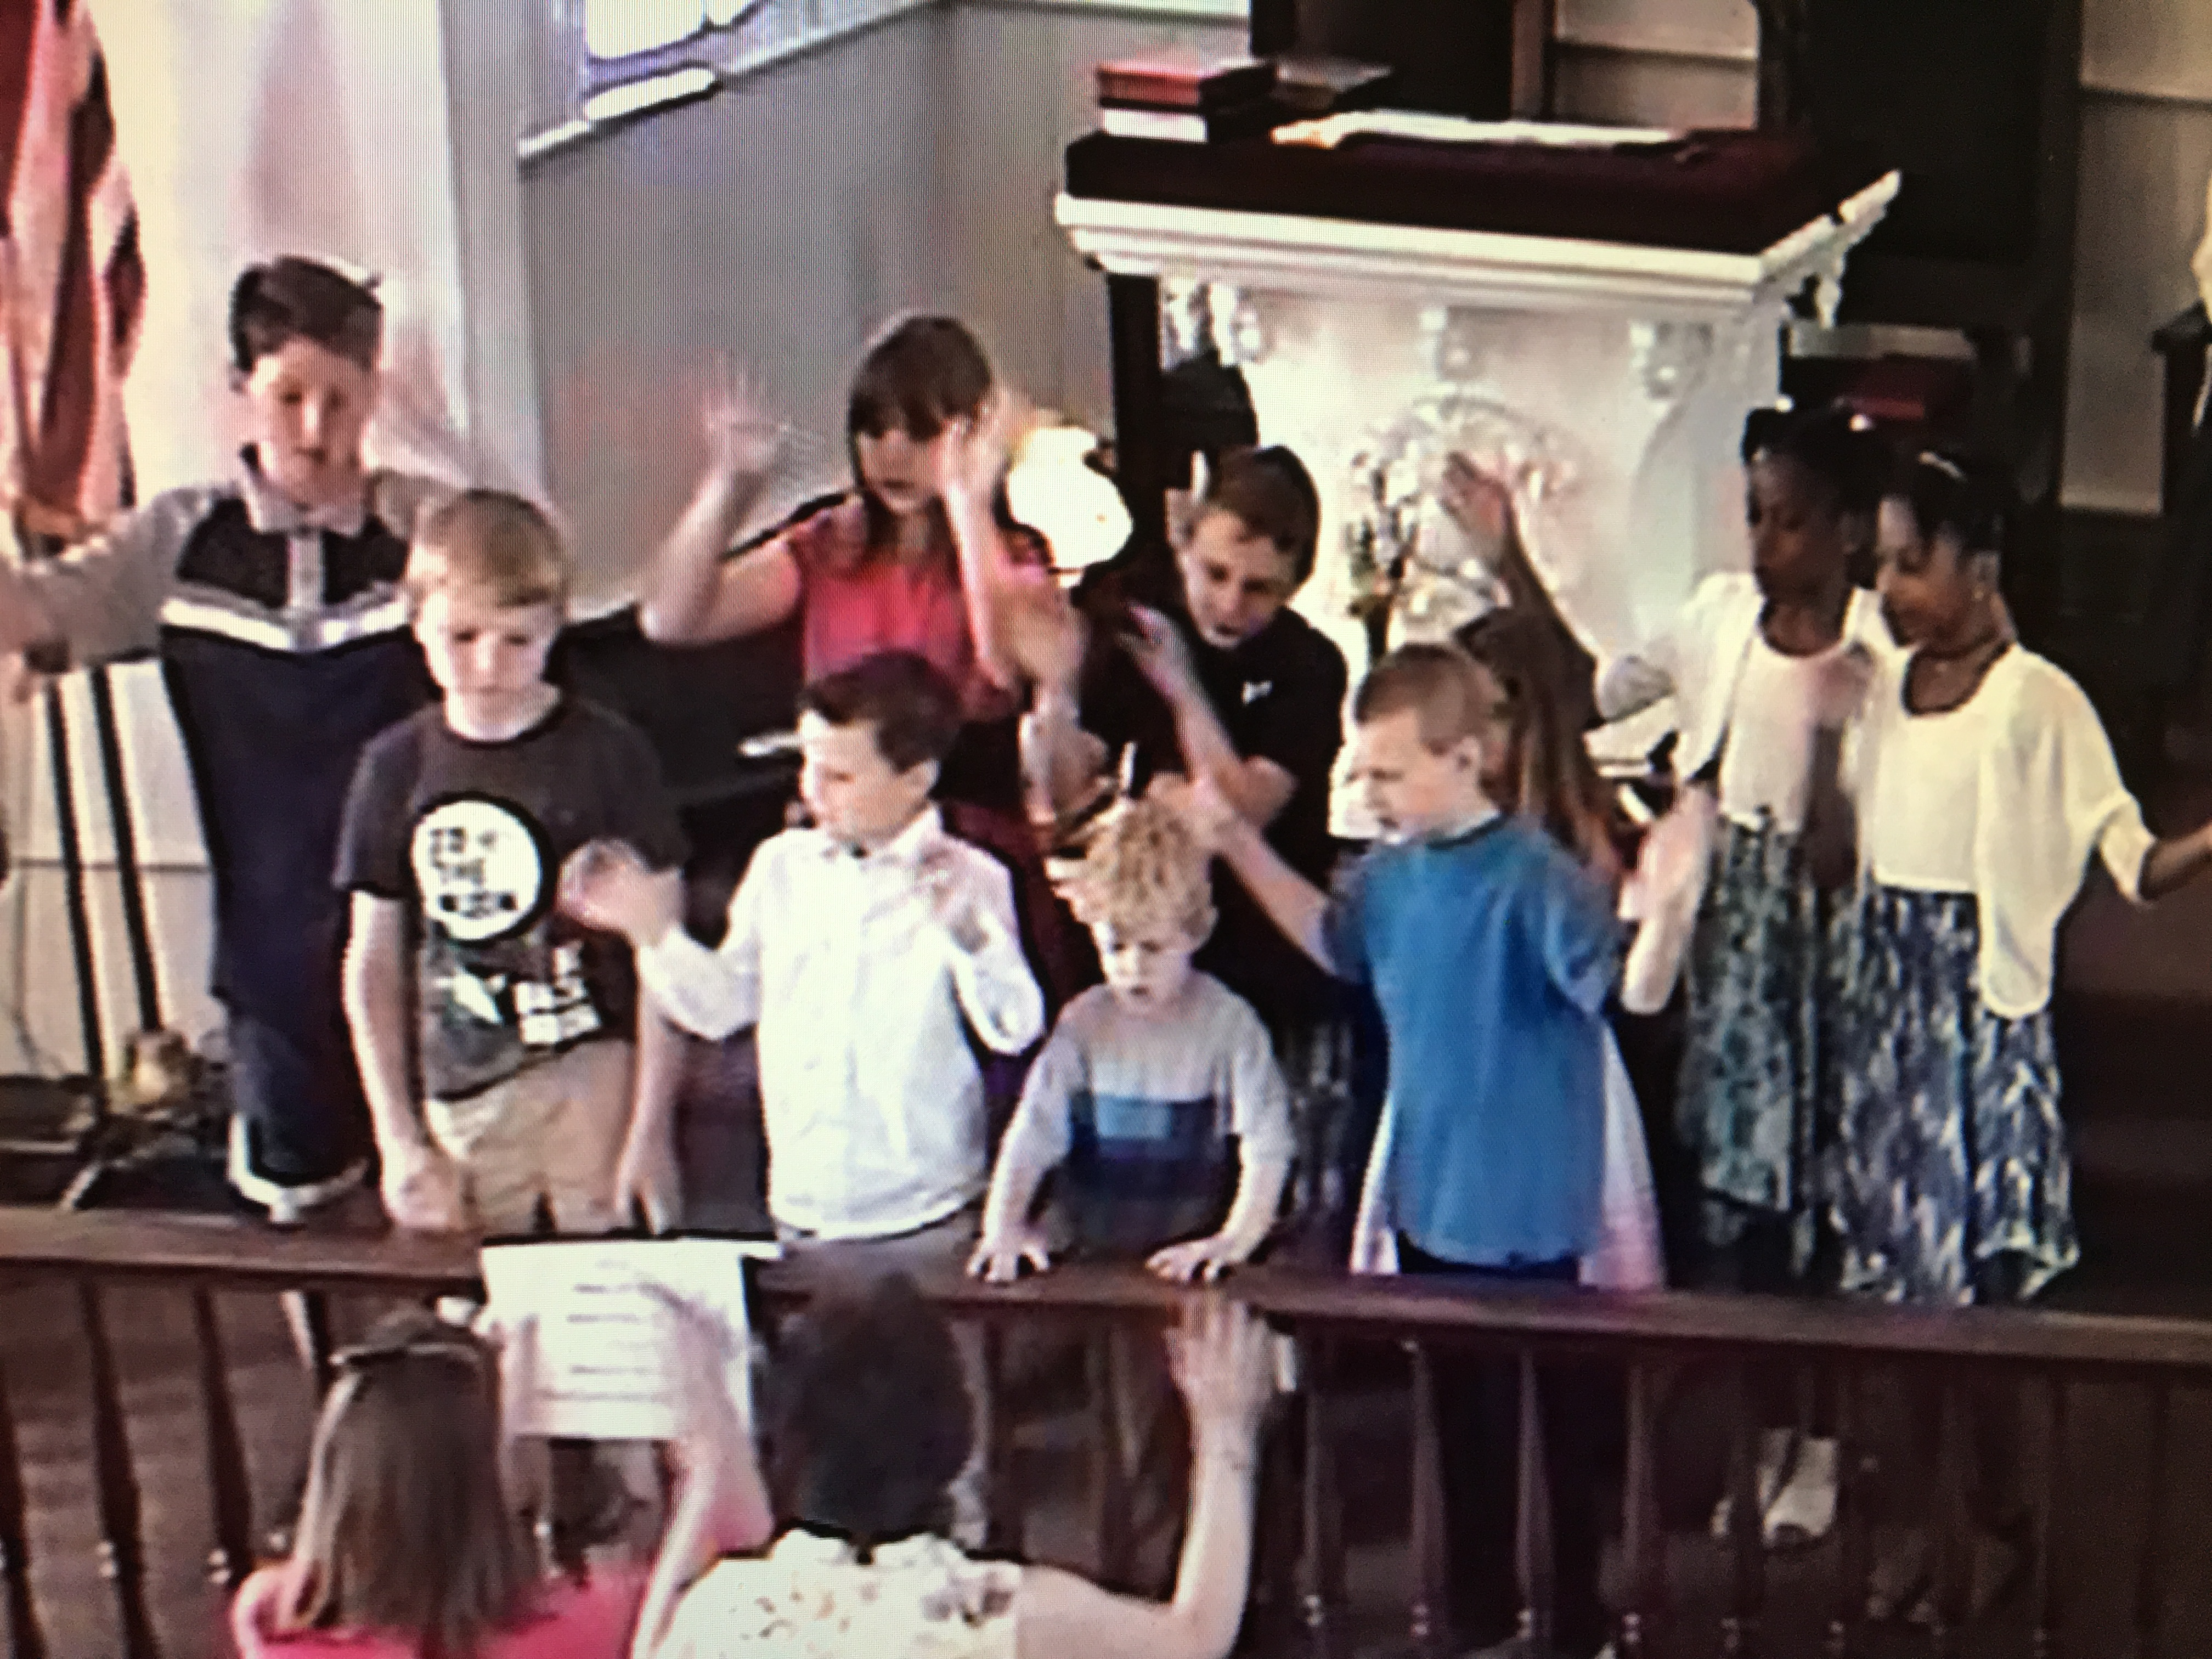 Children song with movements